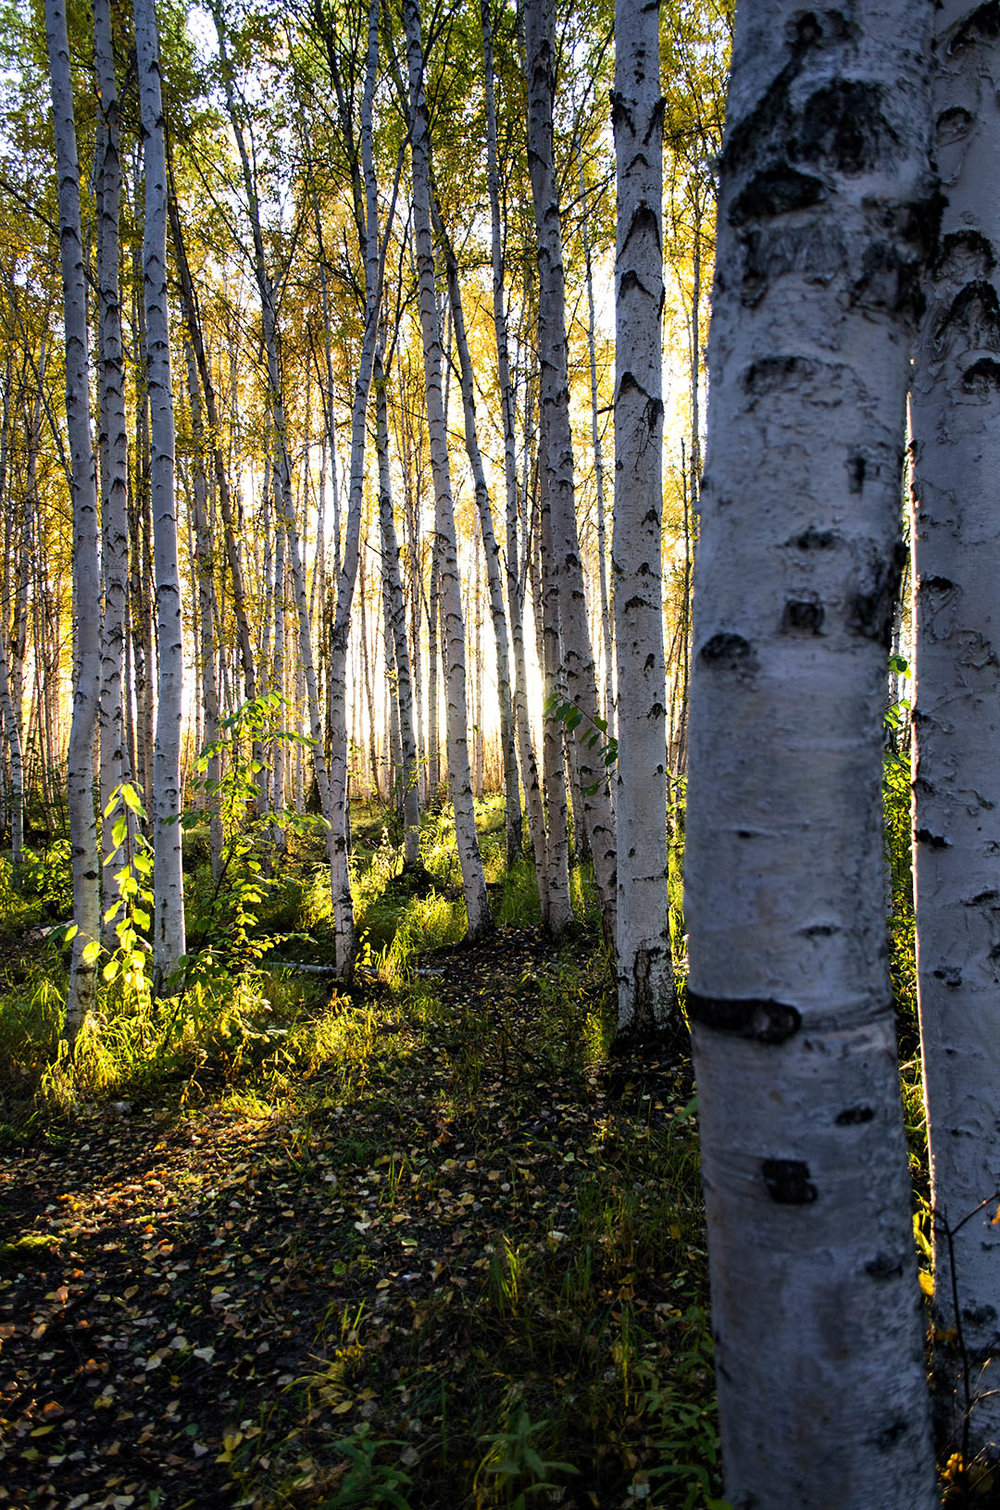 Birch trees in summer light at Creamers Field, Fairbanks, AK.